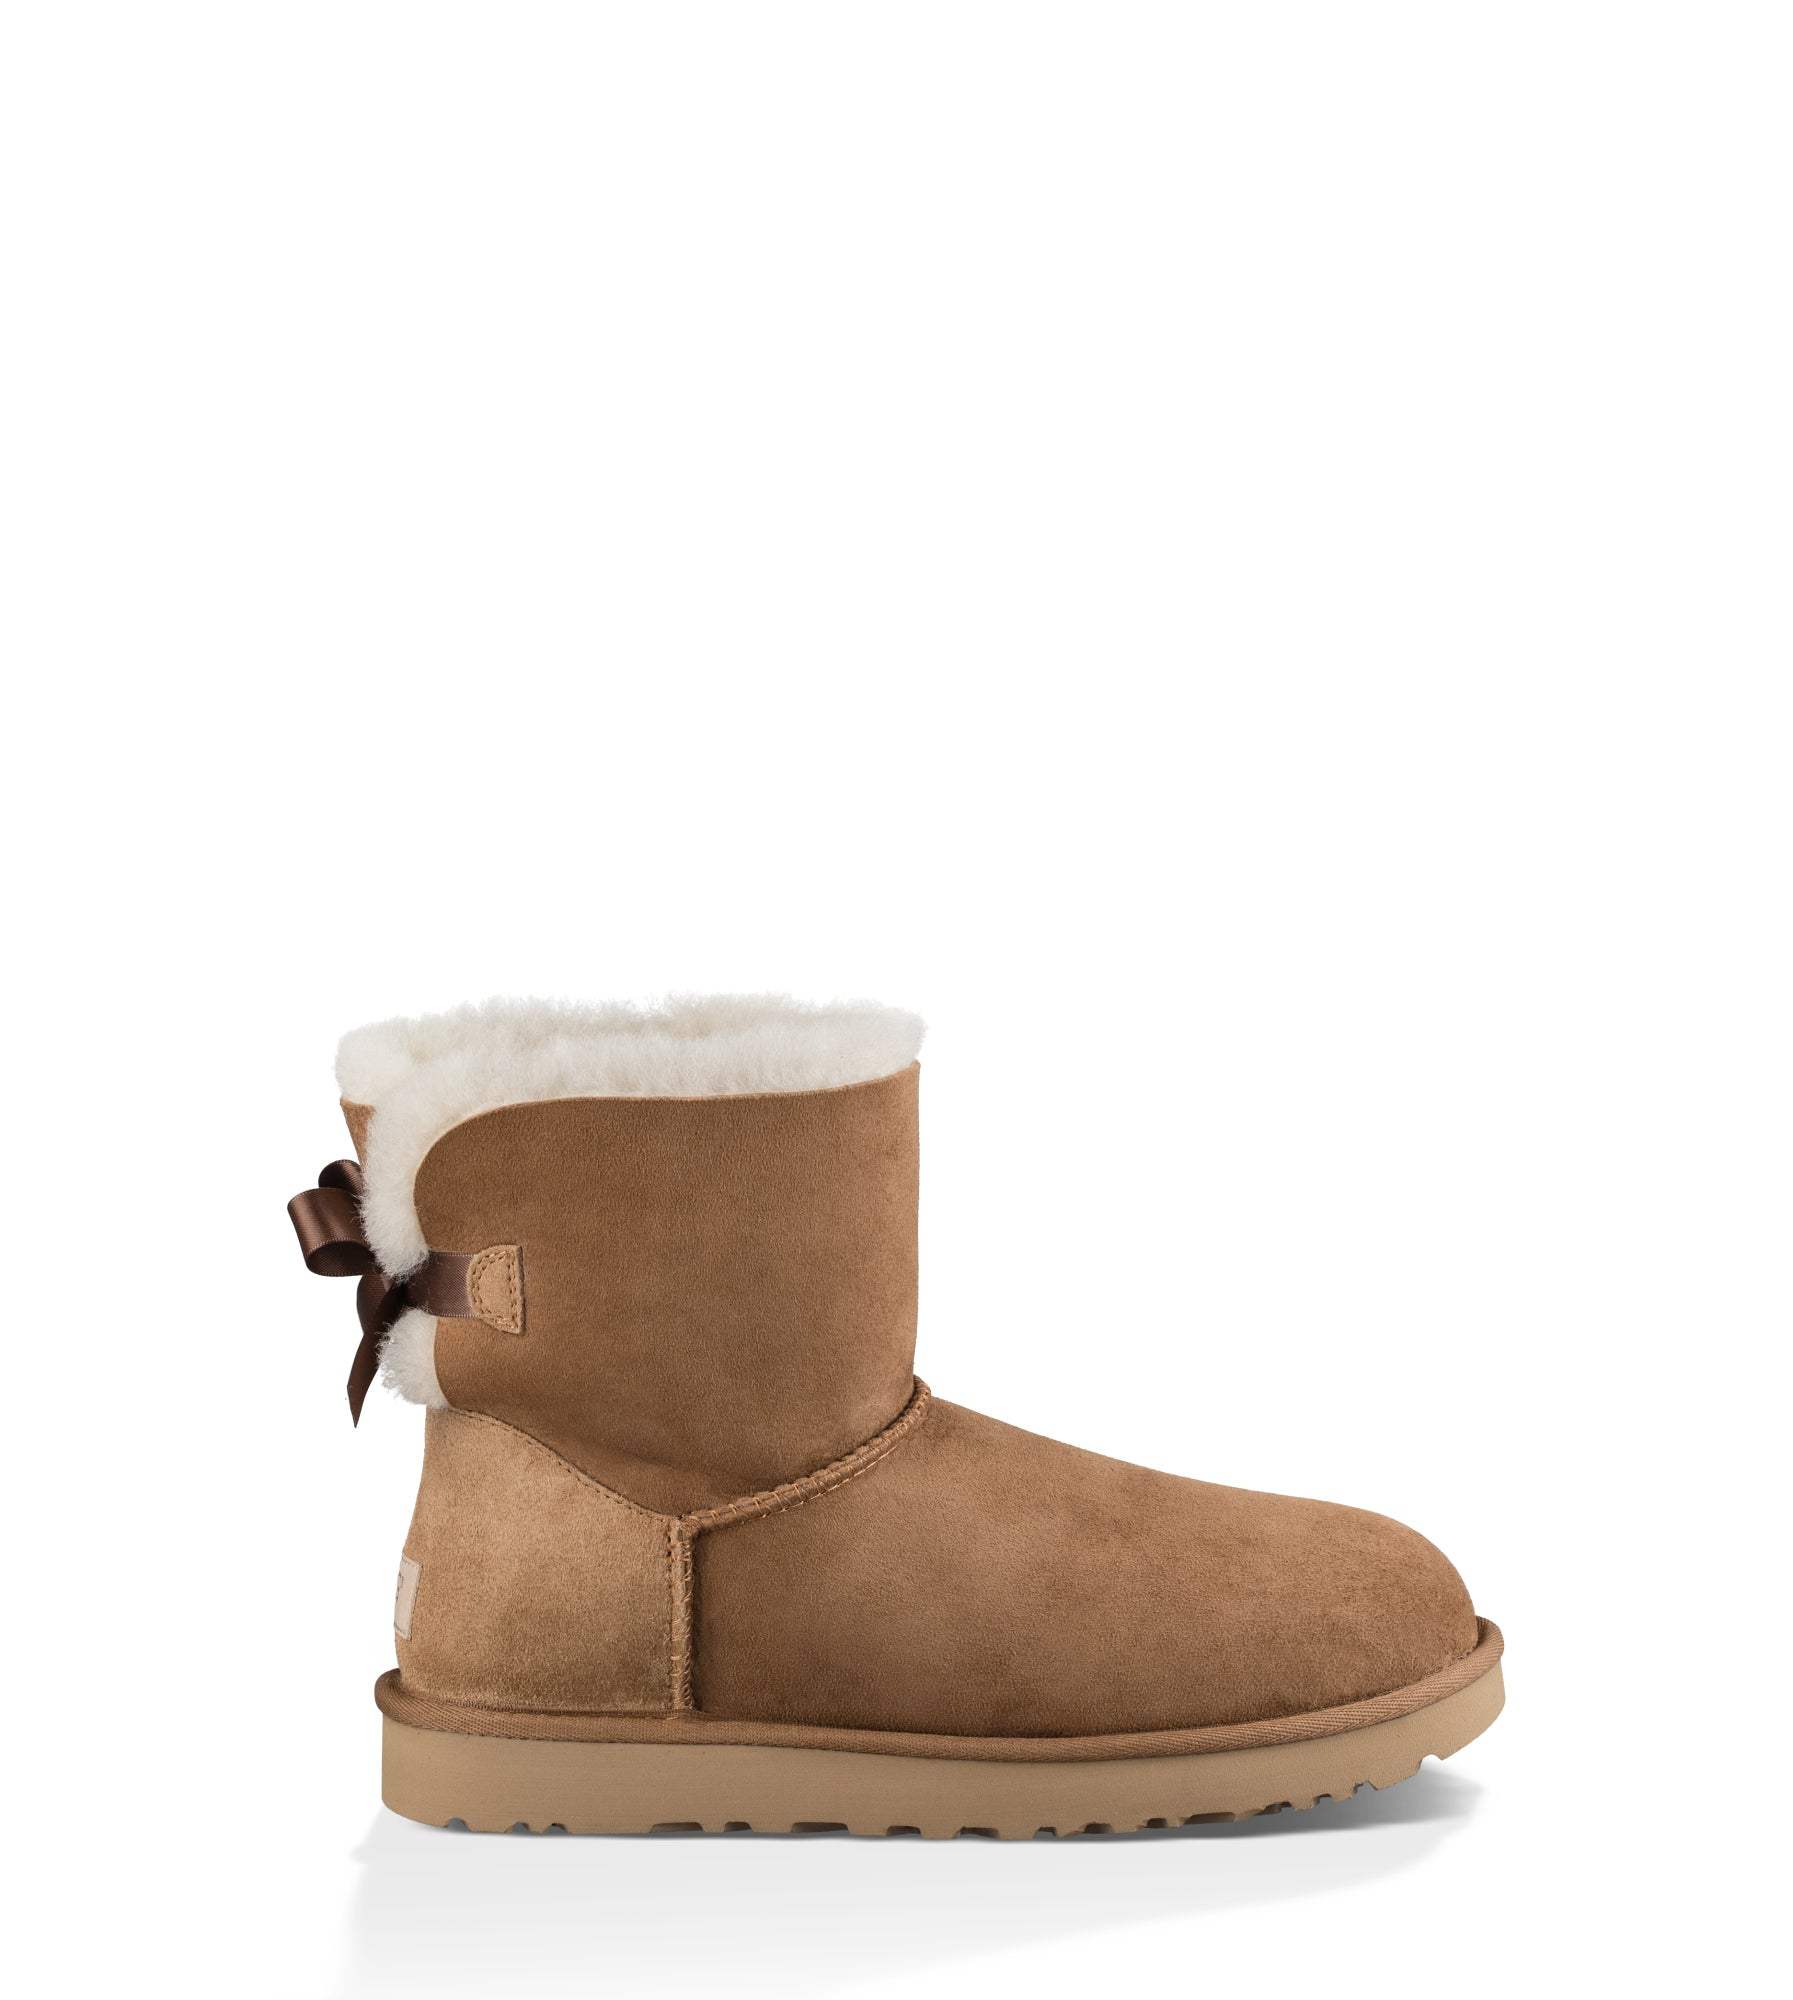 UGG Australia Women's Mini Bailey Bow II in Chestnut